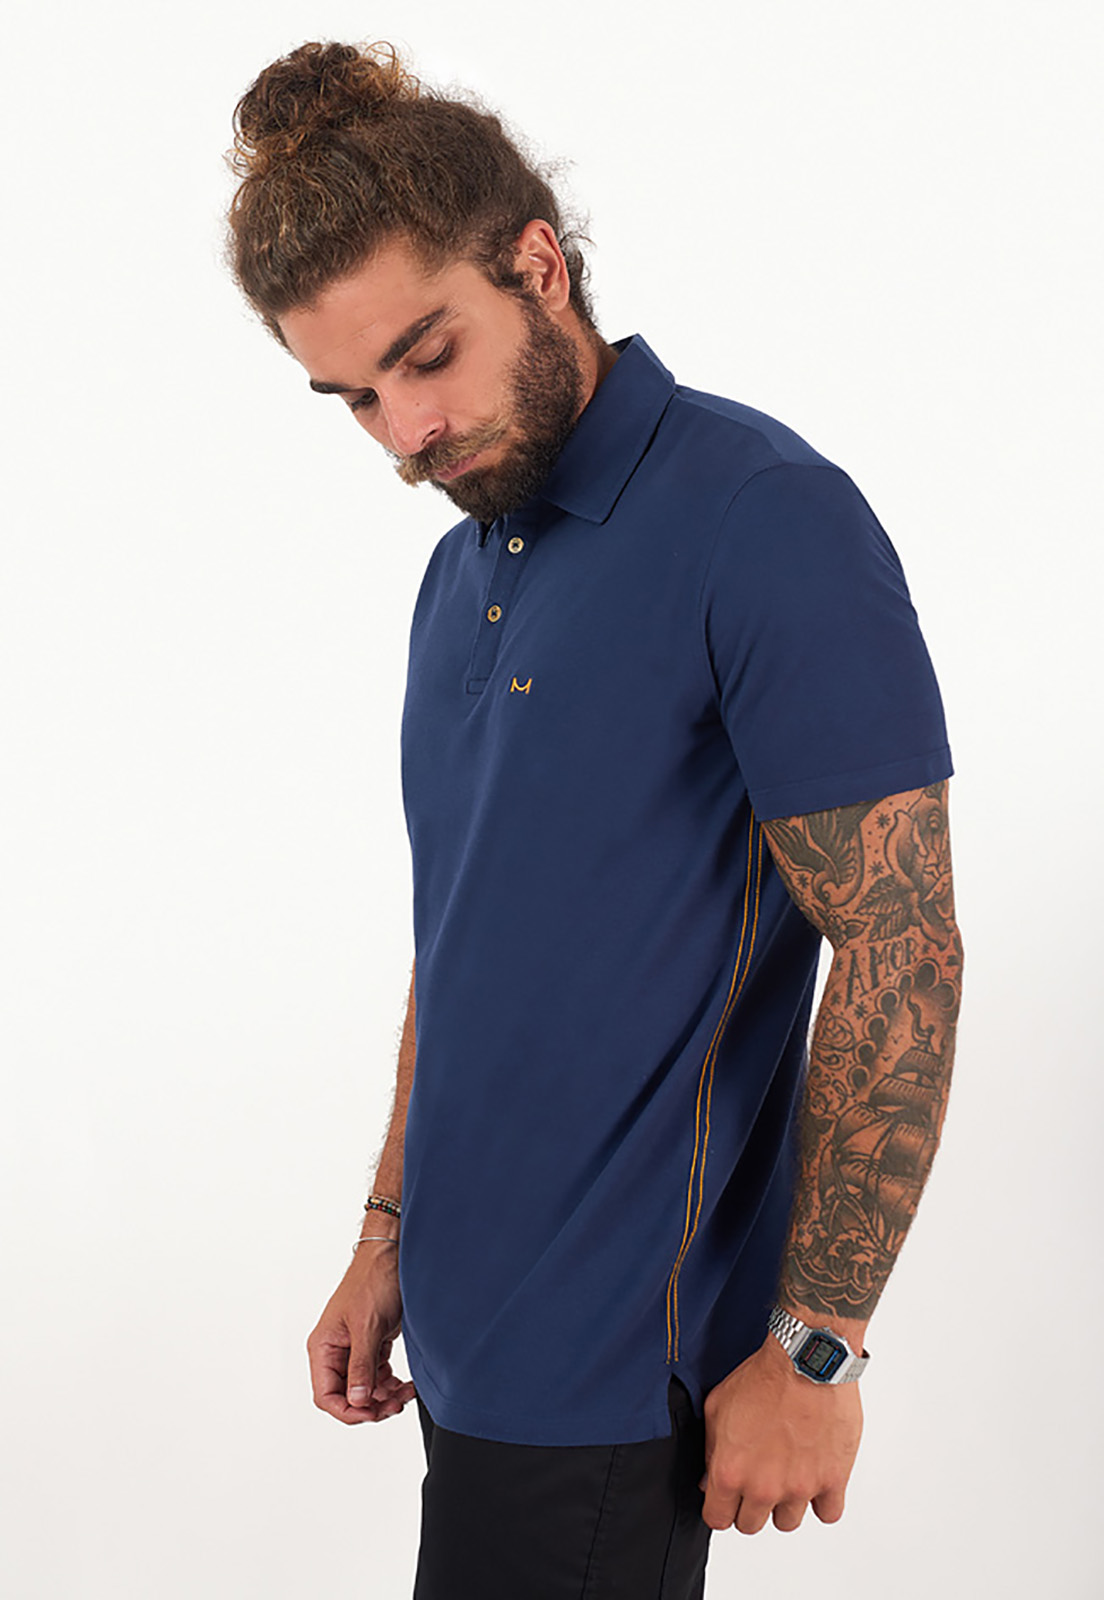 Polo Paris melty  - melty surf & Co.